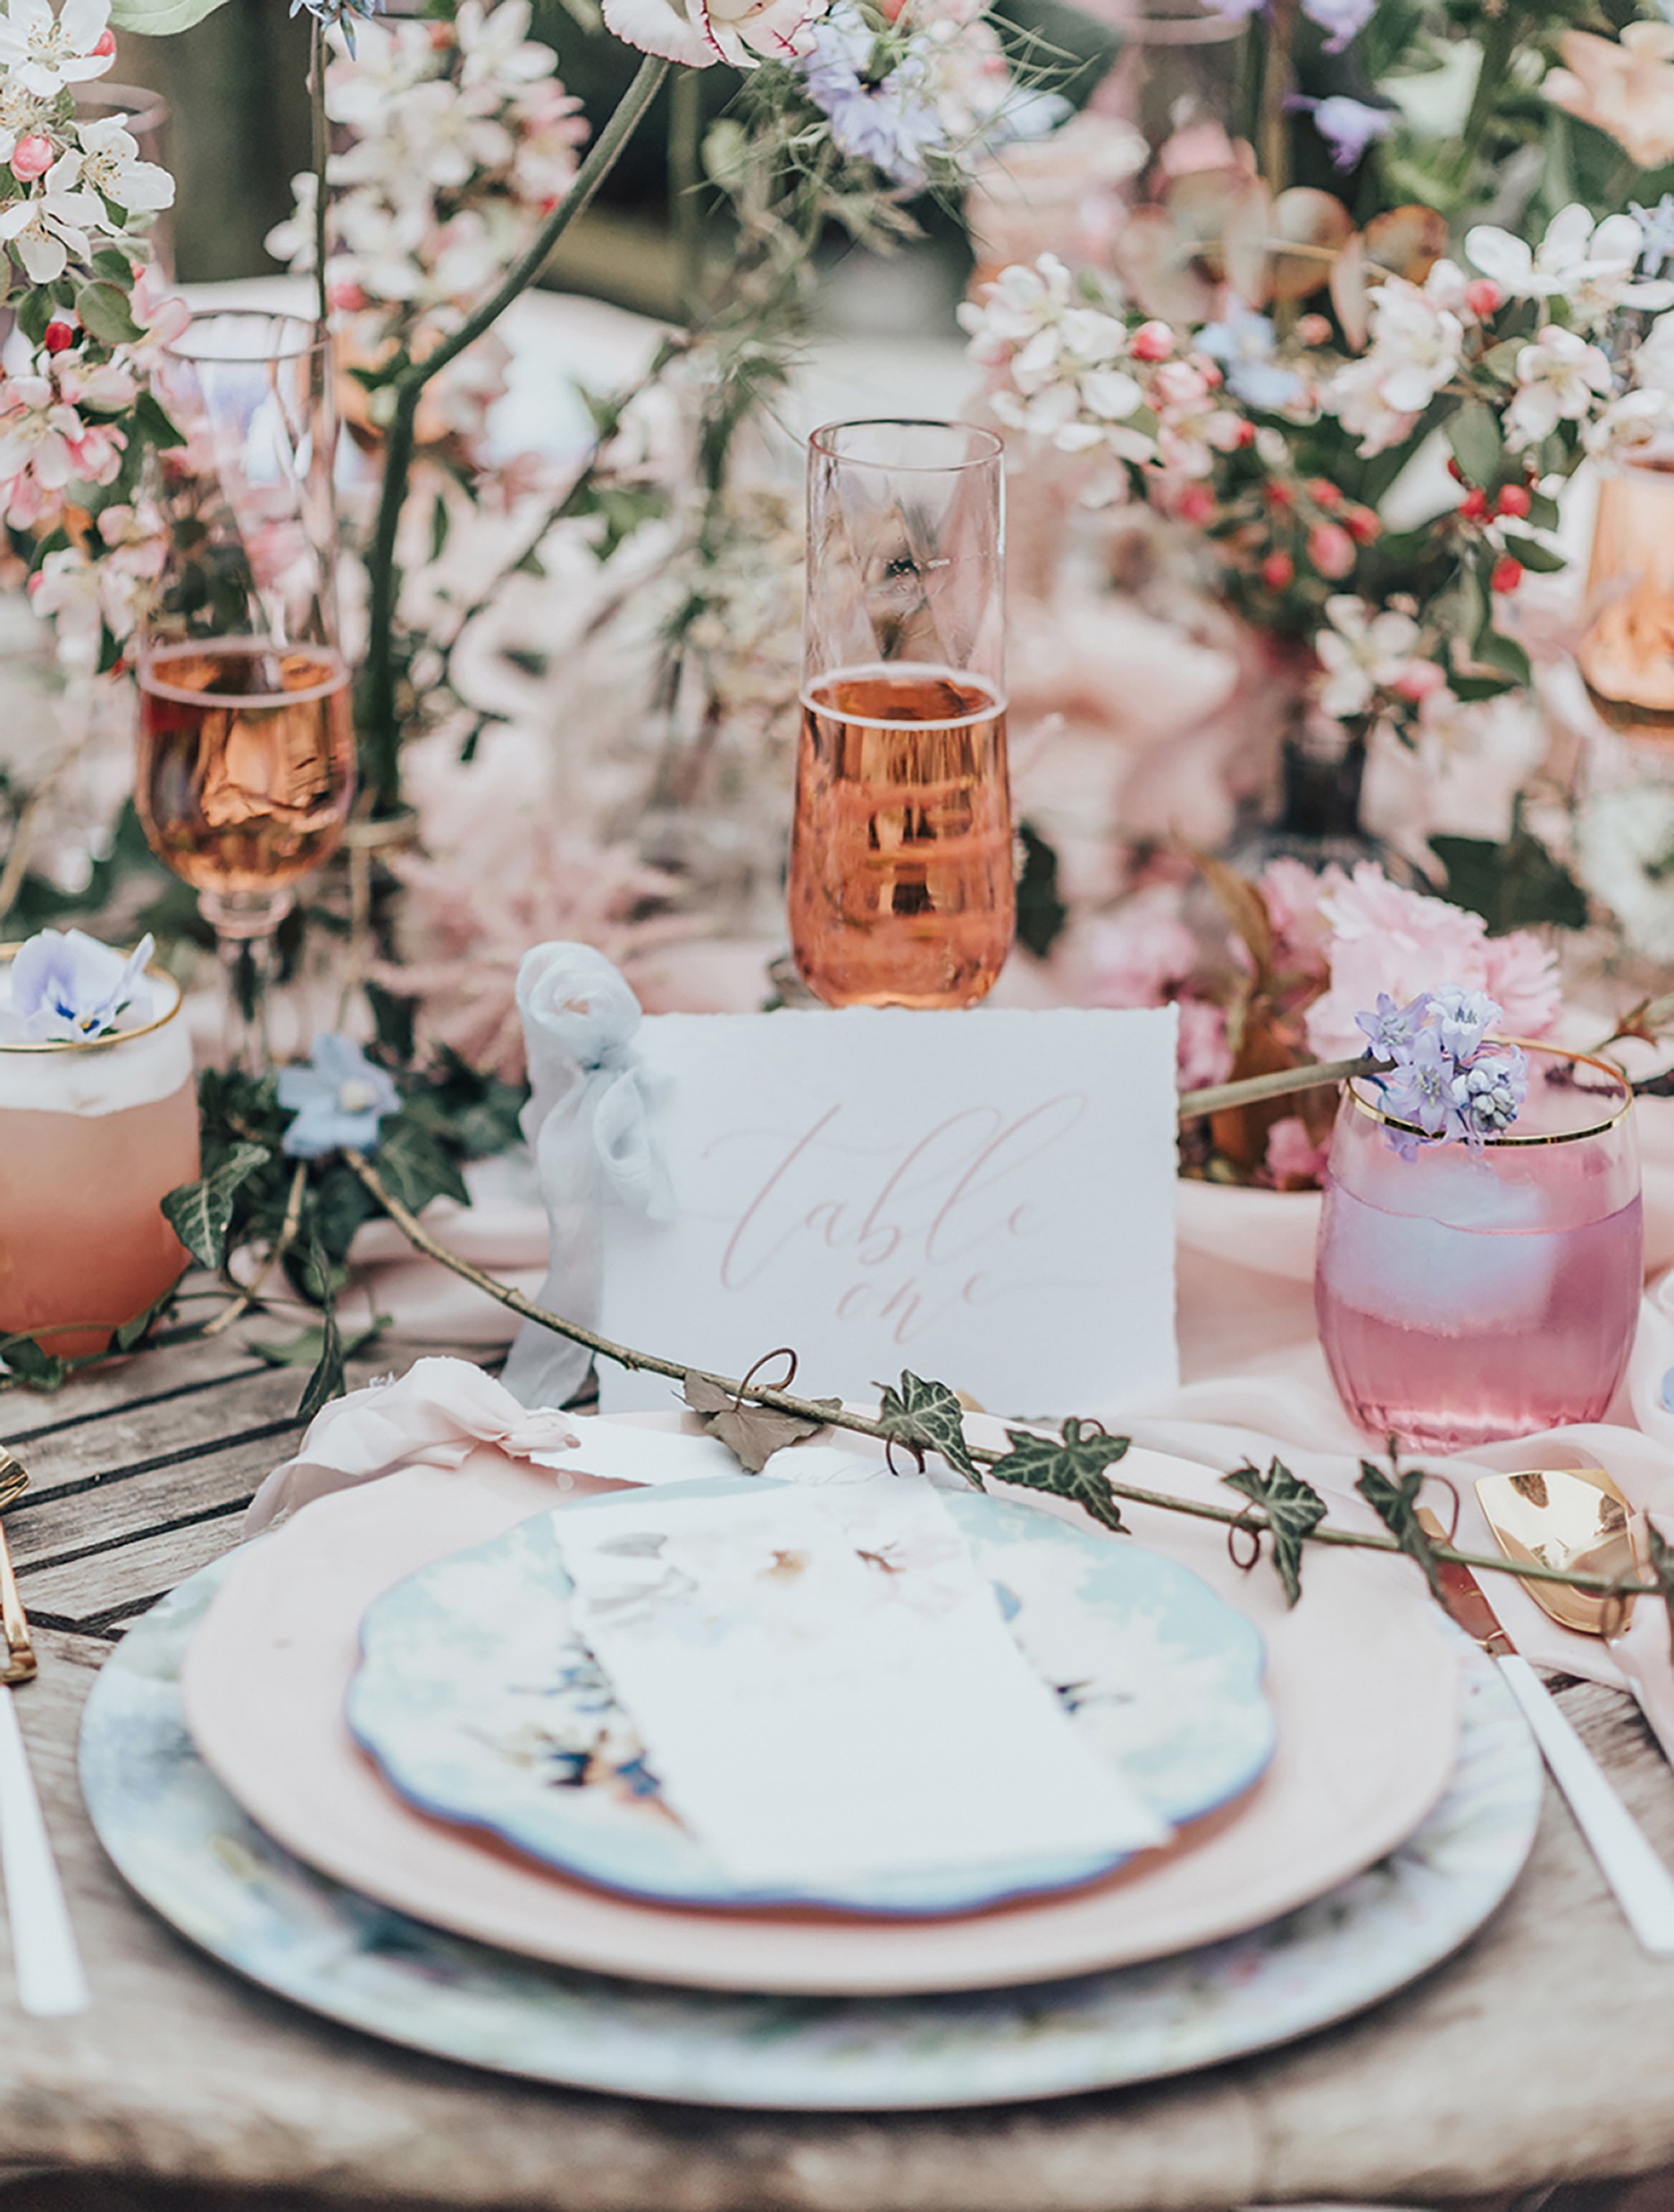 Pretty Whimsical Wedding Table Details | Garthmyl Hall | The Stars Inside | Rebecca Carpenter Photography